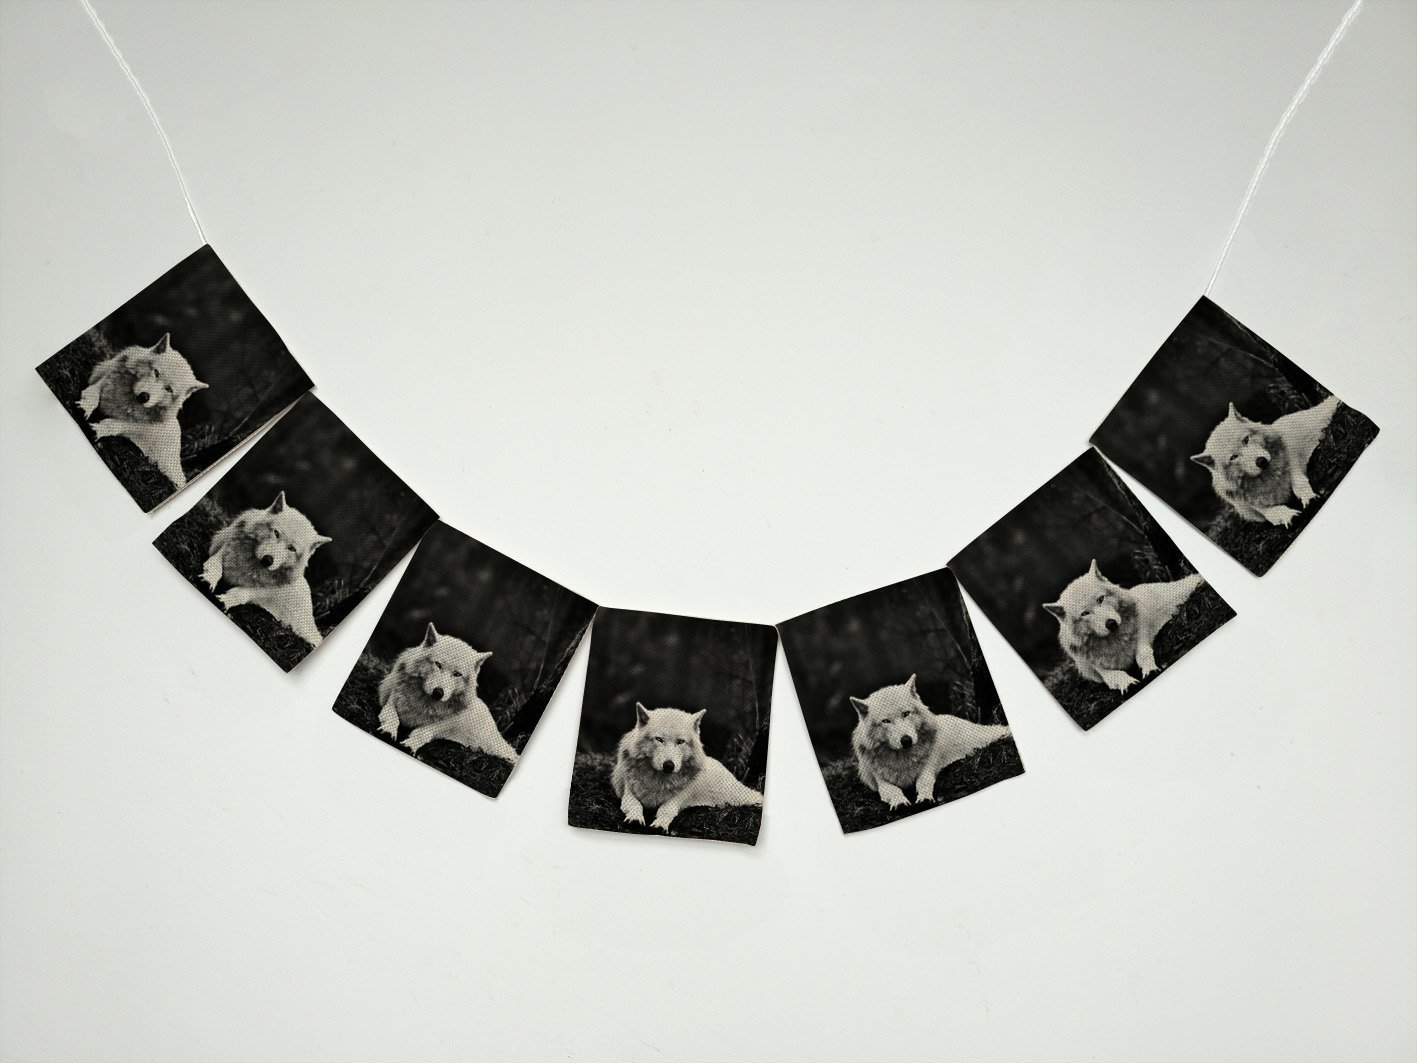 Wolves White Wolf Animals Banner Bunting Garland Flag Sign for Home Family Party Decoration